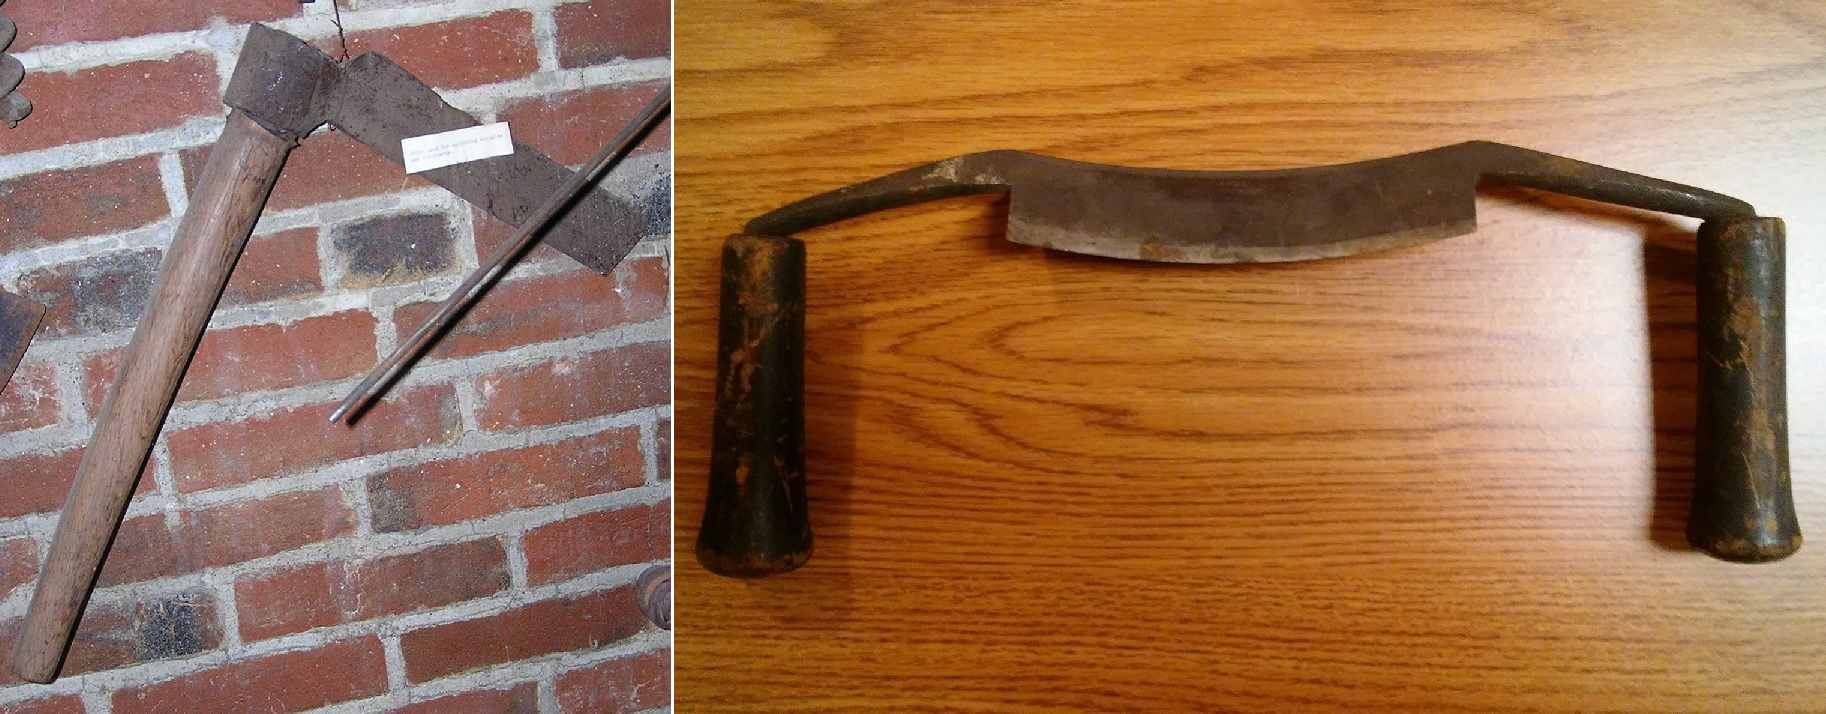 froe and drawknife